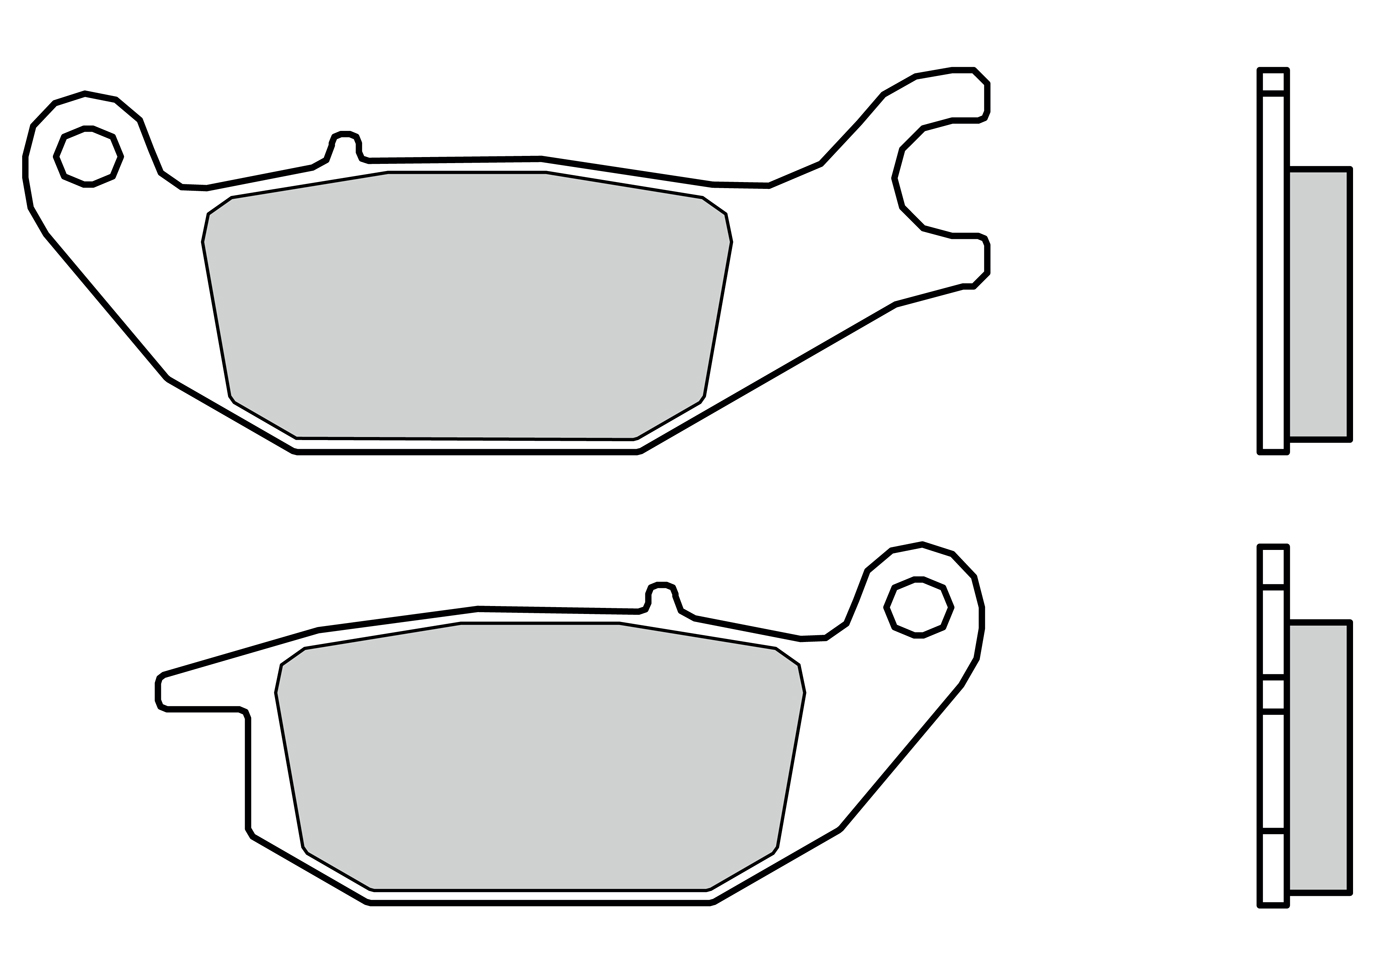 Brembo Brake Pads 07110cc Wiring Diagram Yamaha Aerox Scooter Carbon Ceramic For Tricity 125 14 16 Rear Caliper